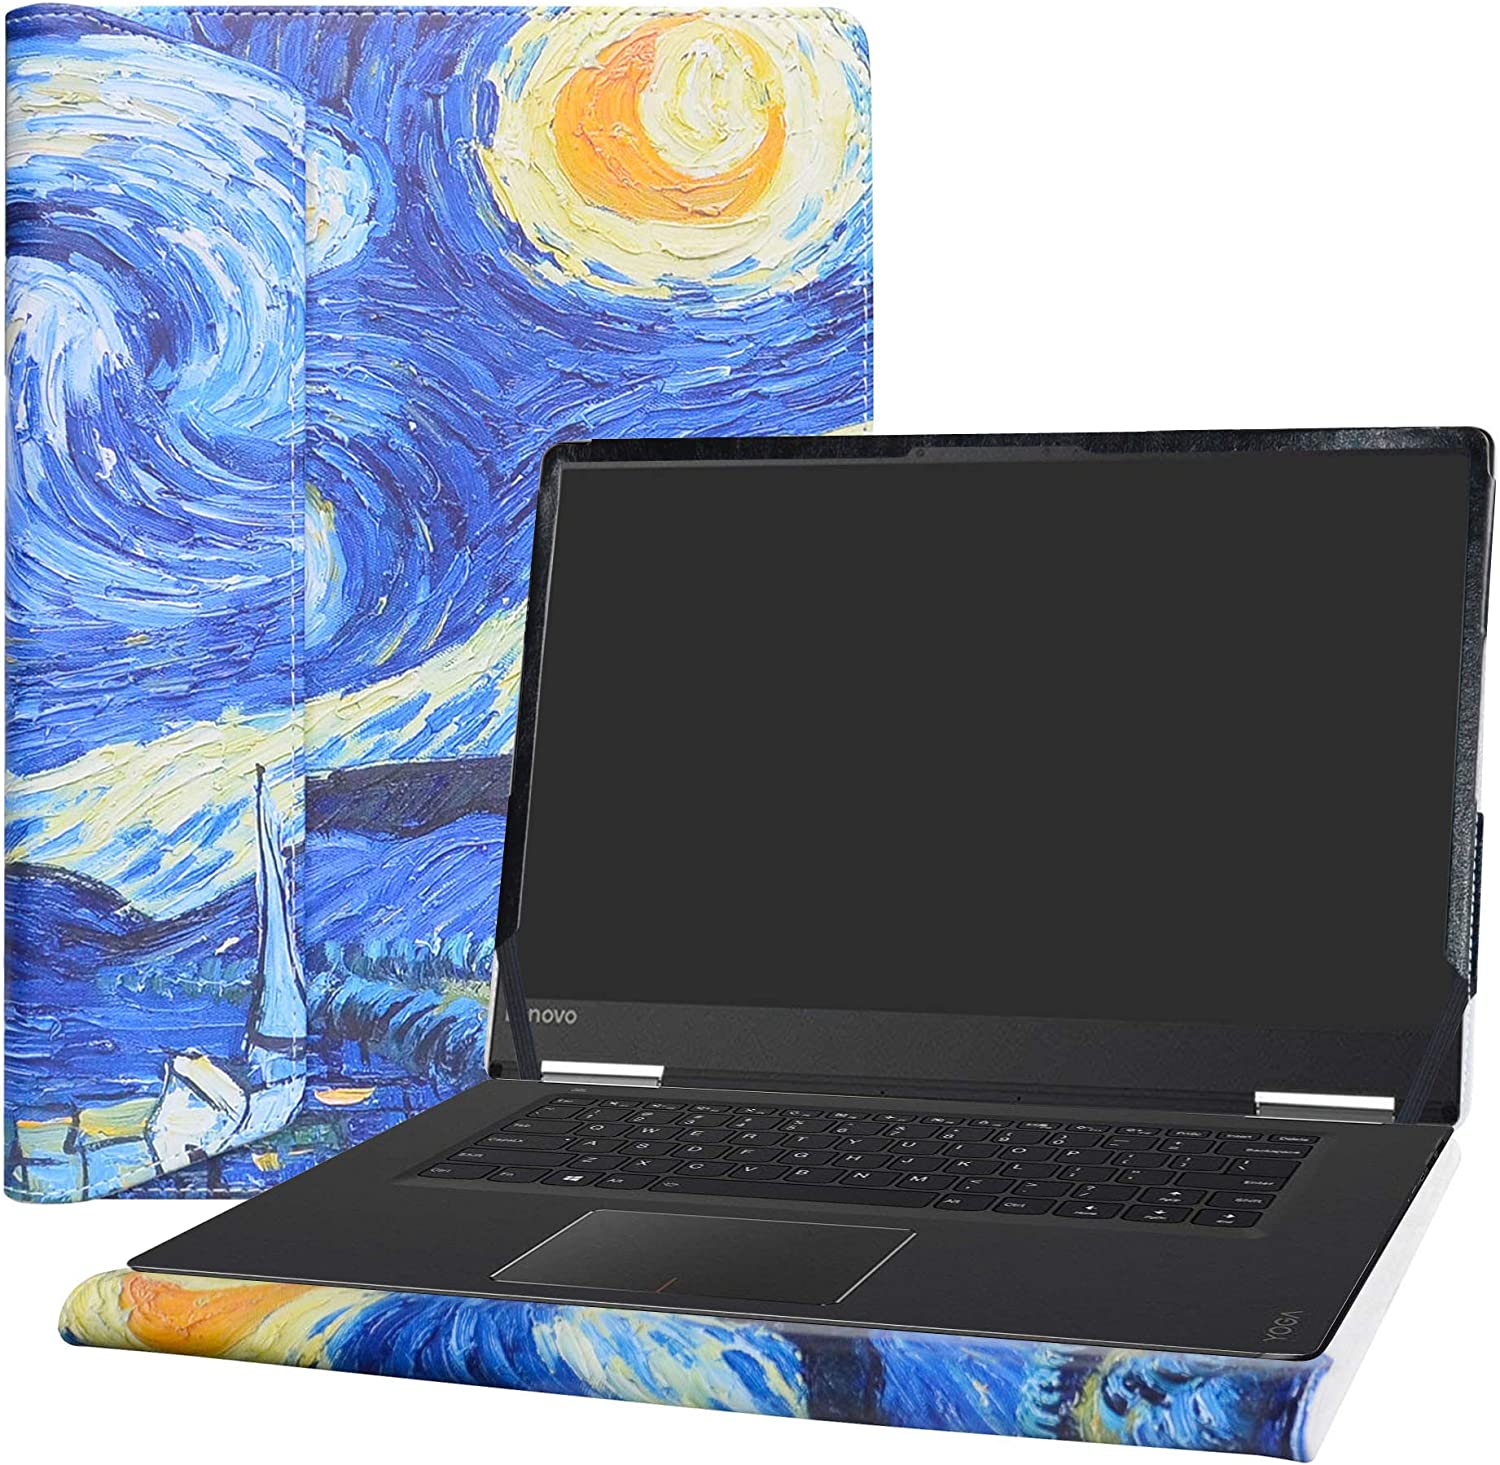 "Alapmk Protective Case Cover for 15.6"" Lenovo Yoga 710 15 710-15IKB/IdeaPad 720S 15 720S-15IKB & ACER Swift 3 15 SF315-52 Laptop(Note:Not fit Yoga 730 720/IdeaPad 710s/SWIFT 3 SF315-51),Starry Night"